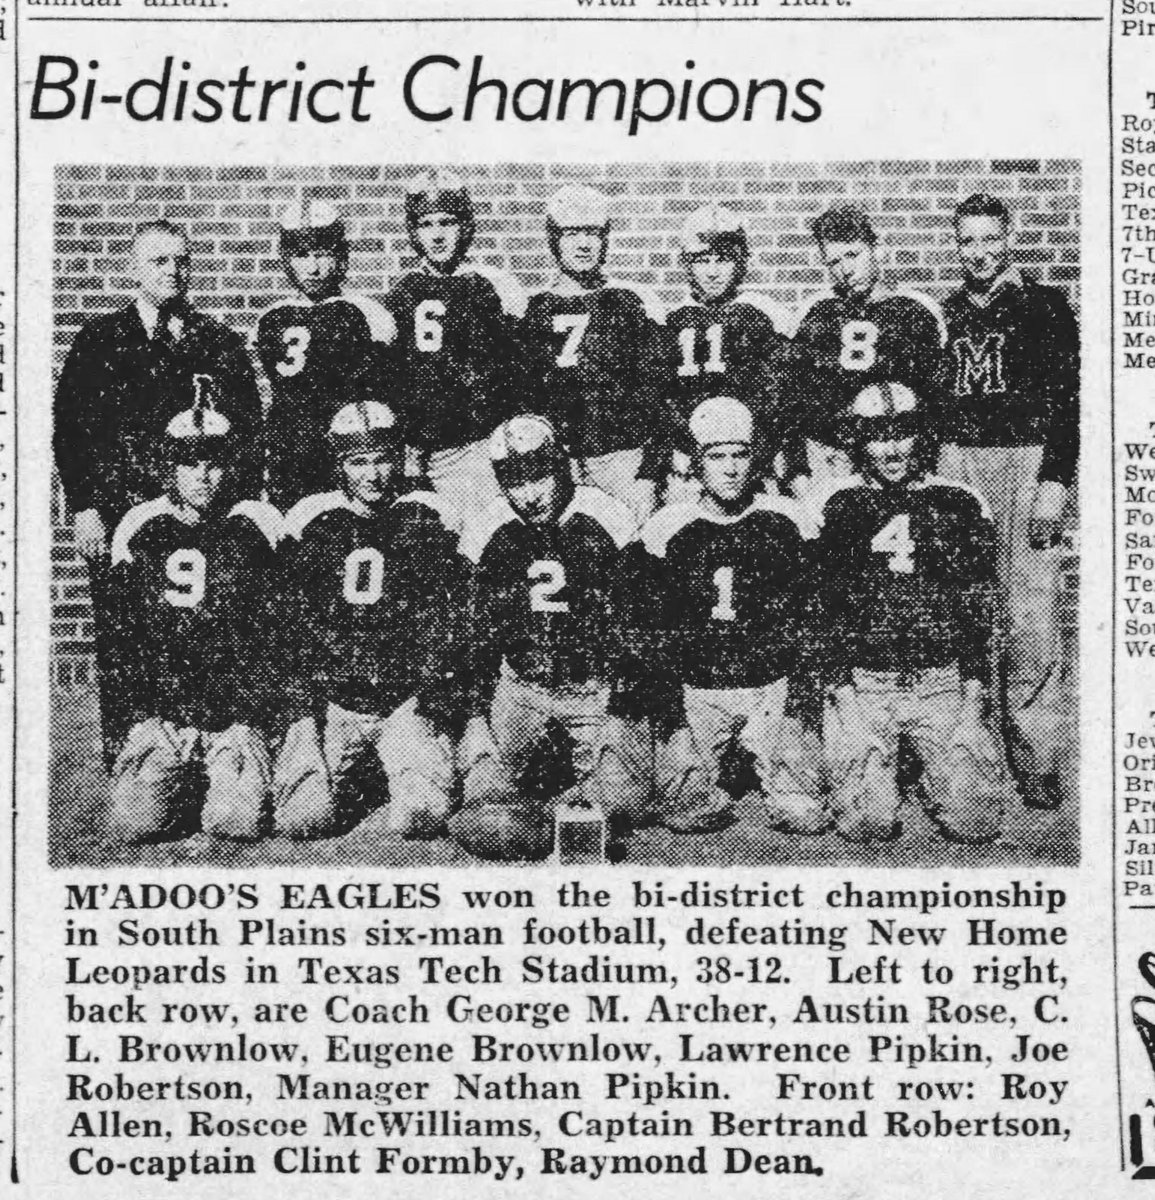 In an unofficial (@uiltexas didnt have playoffs for 6man) Bi-District championship game in 1940, McAdoo defeated @NewHomeISD 38-12 at Texas Tech, cant be many 6man games played at Texas Tech I would guess @Texas1AFan @pchristy11 https://t.co/7HRf4oxij6